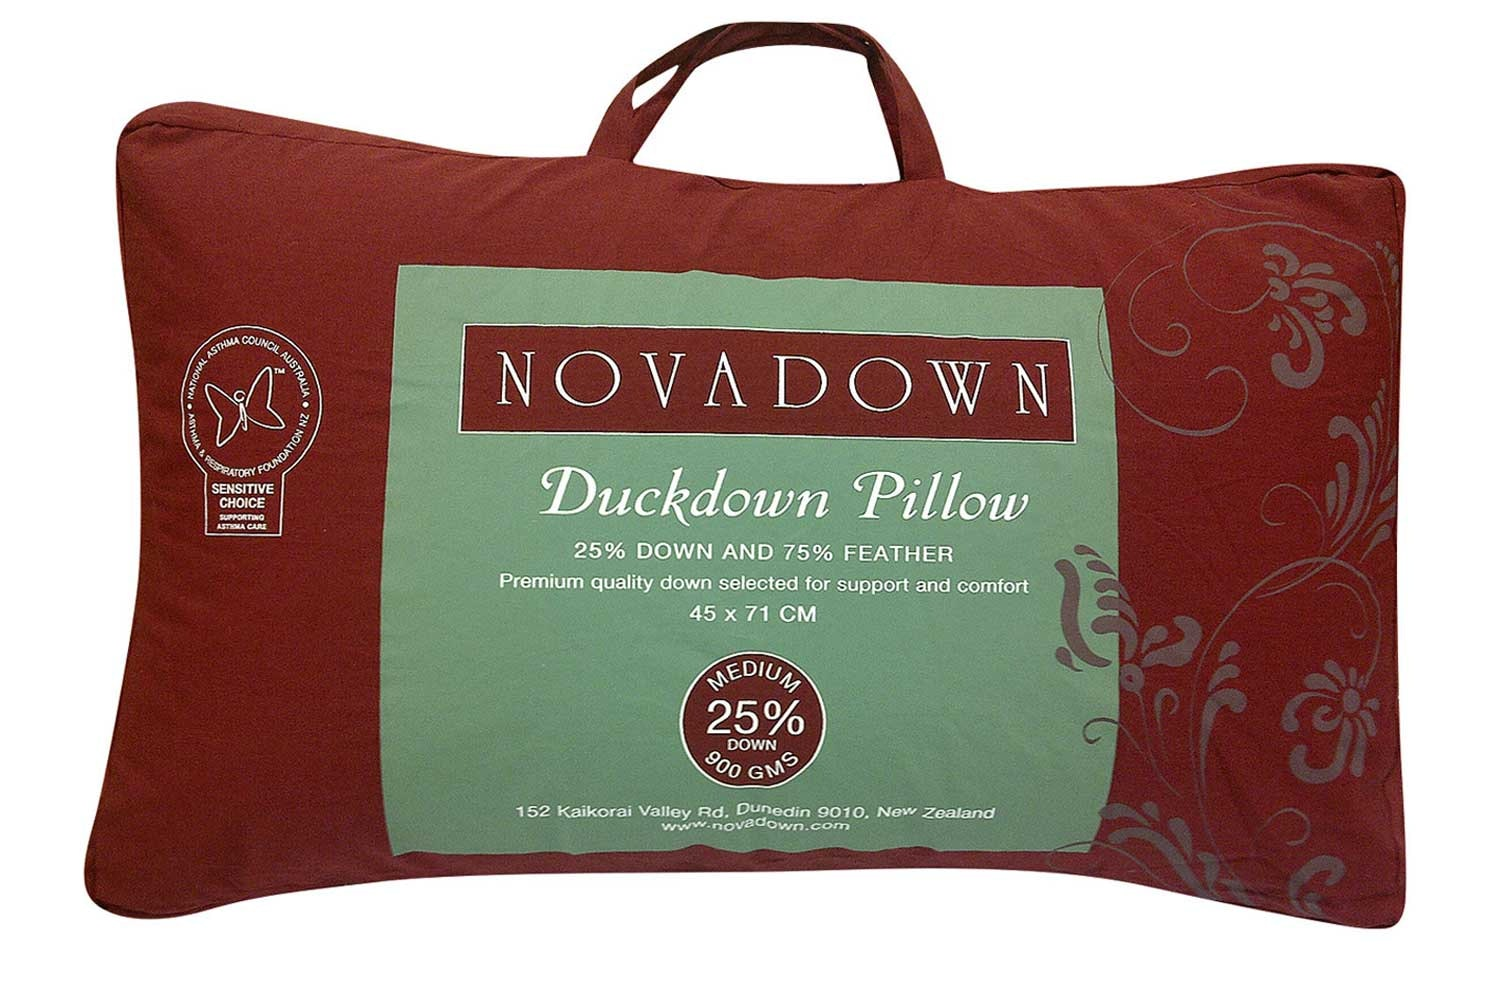 25/75 Duck Down Pillow by Novadown